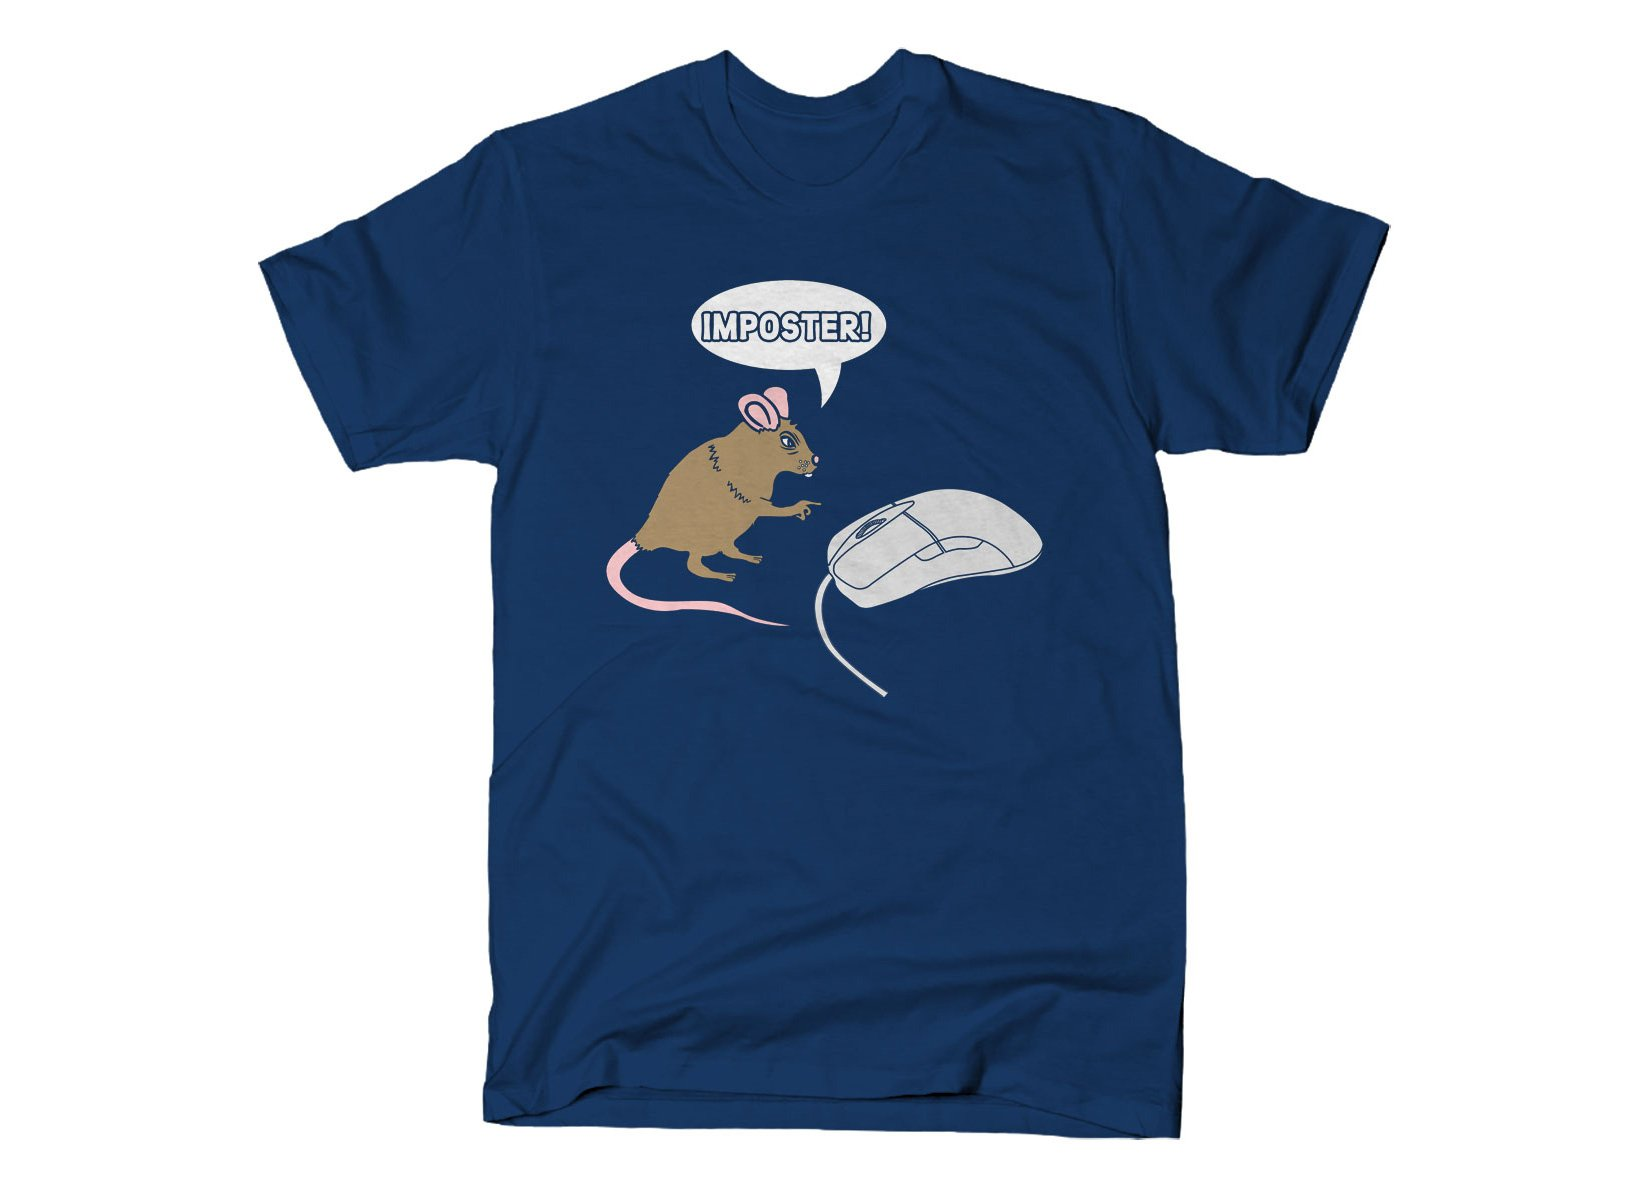 Imposter on Mens T-Shirt